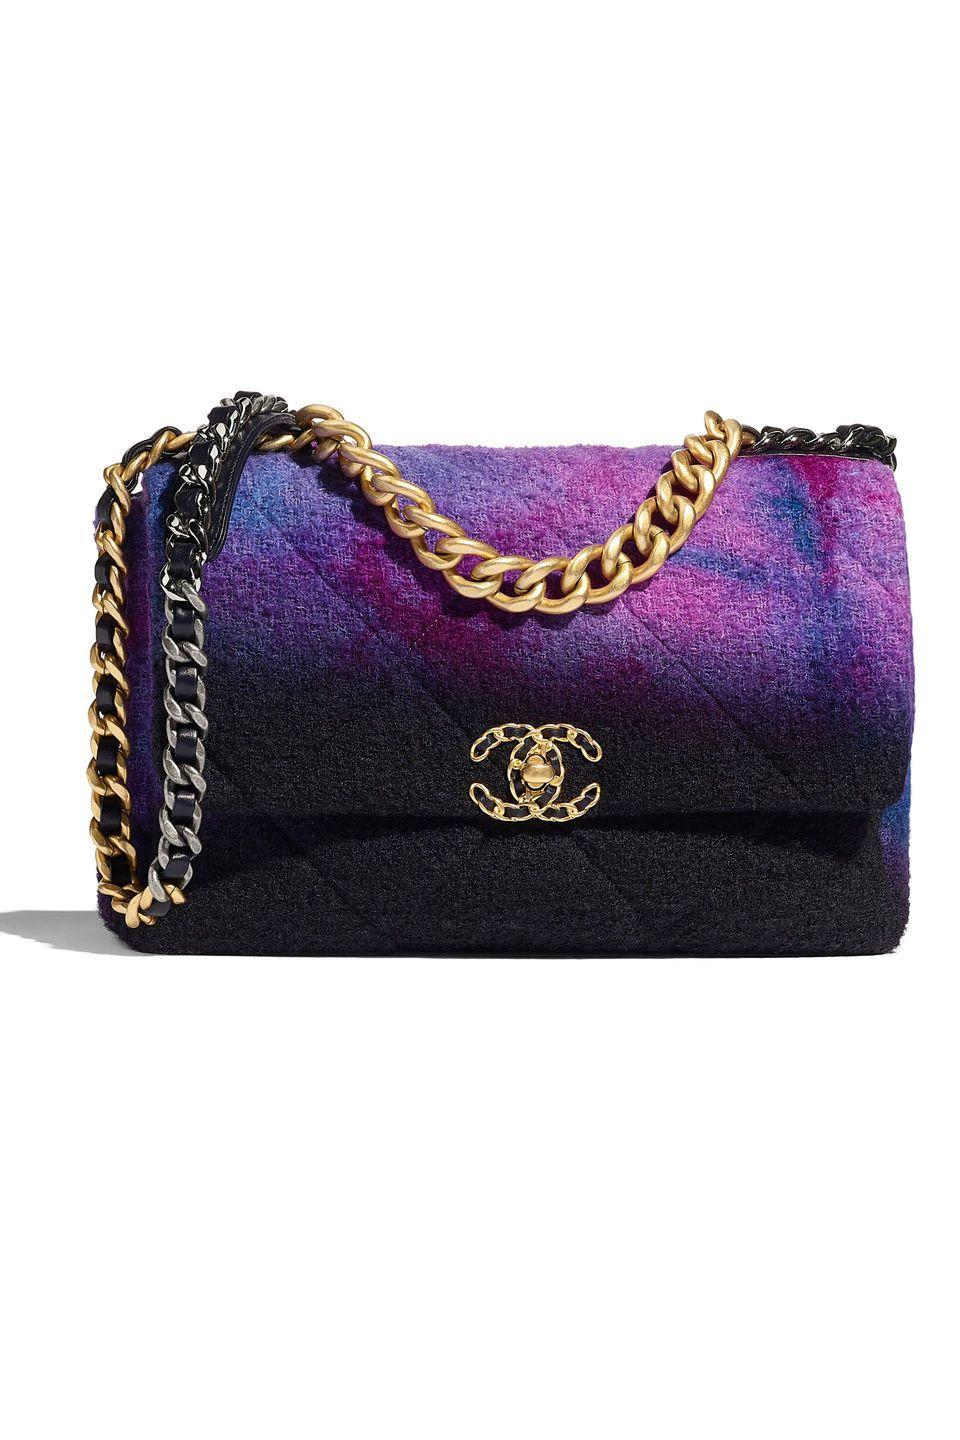 "<p>This handbag is a Venn Diagram center where Chanel lovers and goths collide. Reworking the Parisian house's classic flap bag in a moody purple, this subtle update will be sitting pretty in your closet for years to come. It also offers a genius solution for those of us who can never choose between gold and silver hardware: Why not both? </p><p><em>Chanel, $4,800; chanel.com</em></p><p><a class=""link rapid-noclick-resp"" href=""https://go.redirectingat.com?id=74968X1596630&url=https%3A%2F%2Fwww.chanel.com%2Fus%2Ffashion%2Fp%2FAS1161B03641N7619%2Fchanel-19-large-flap-bag-wool-tweed-gold-tone-silver-tone-ruthenium-finish-metal%2F&sref=https%3A%2F%2Fwww.elle.com%2Ffashion%2Fshopping%2Fg33416567%2Fdesigner-it-bags-pre-fall-2021%2F"" rel=""nofollow noopener"" target=""_blank"" data-ylk=""slk:SHOP NOW"">SHOP NOW</a></p>"